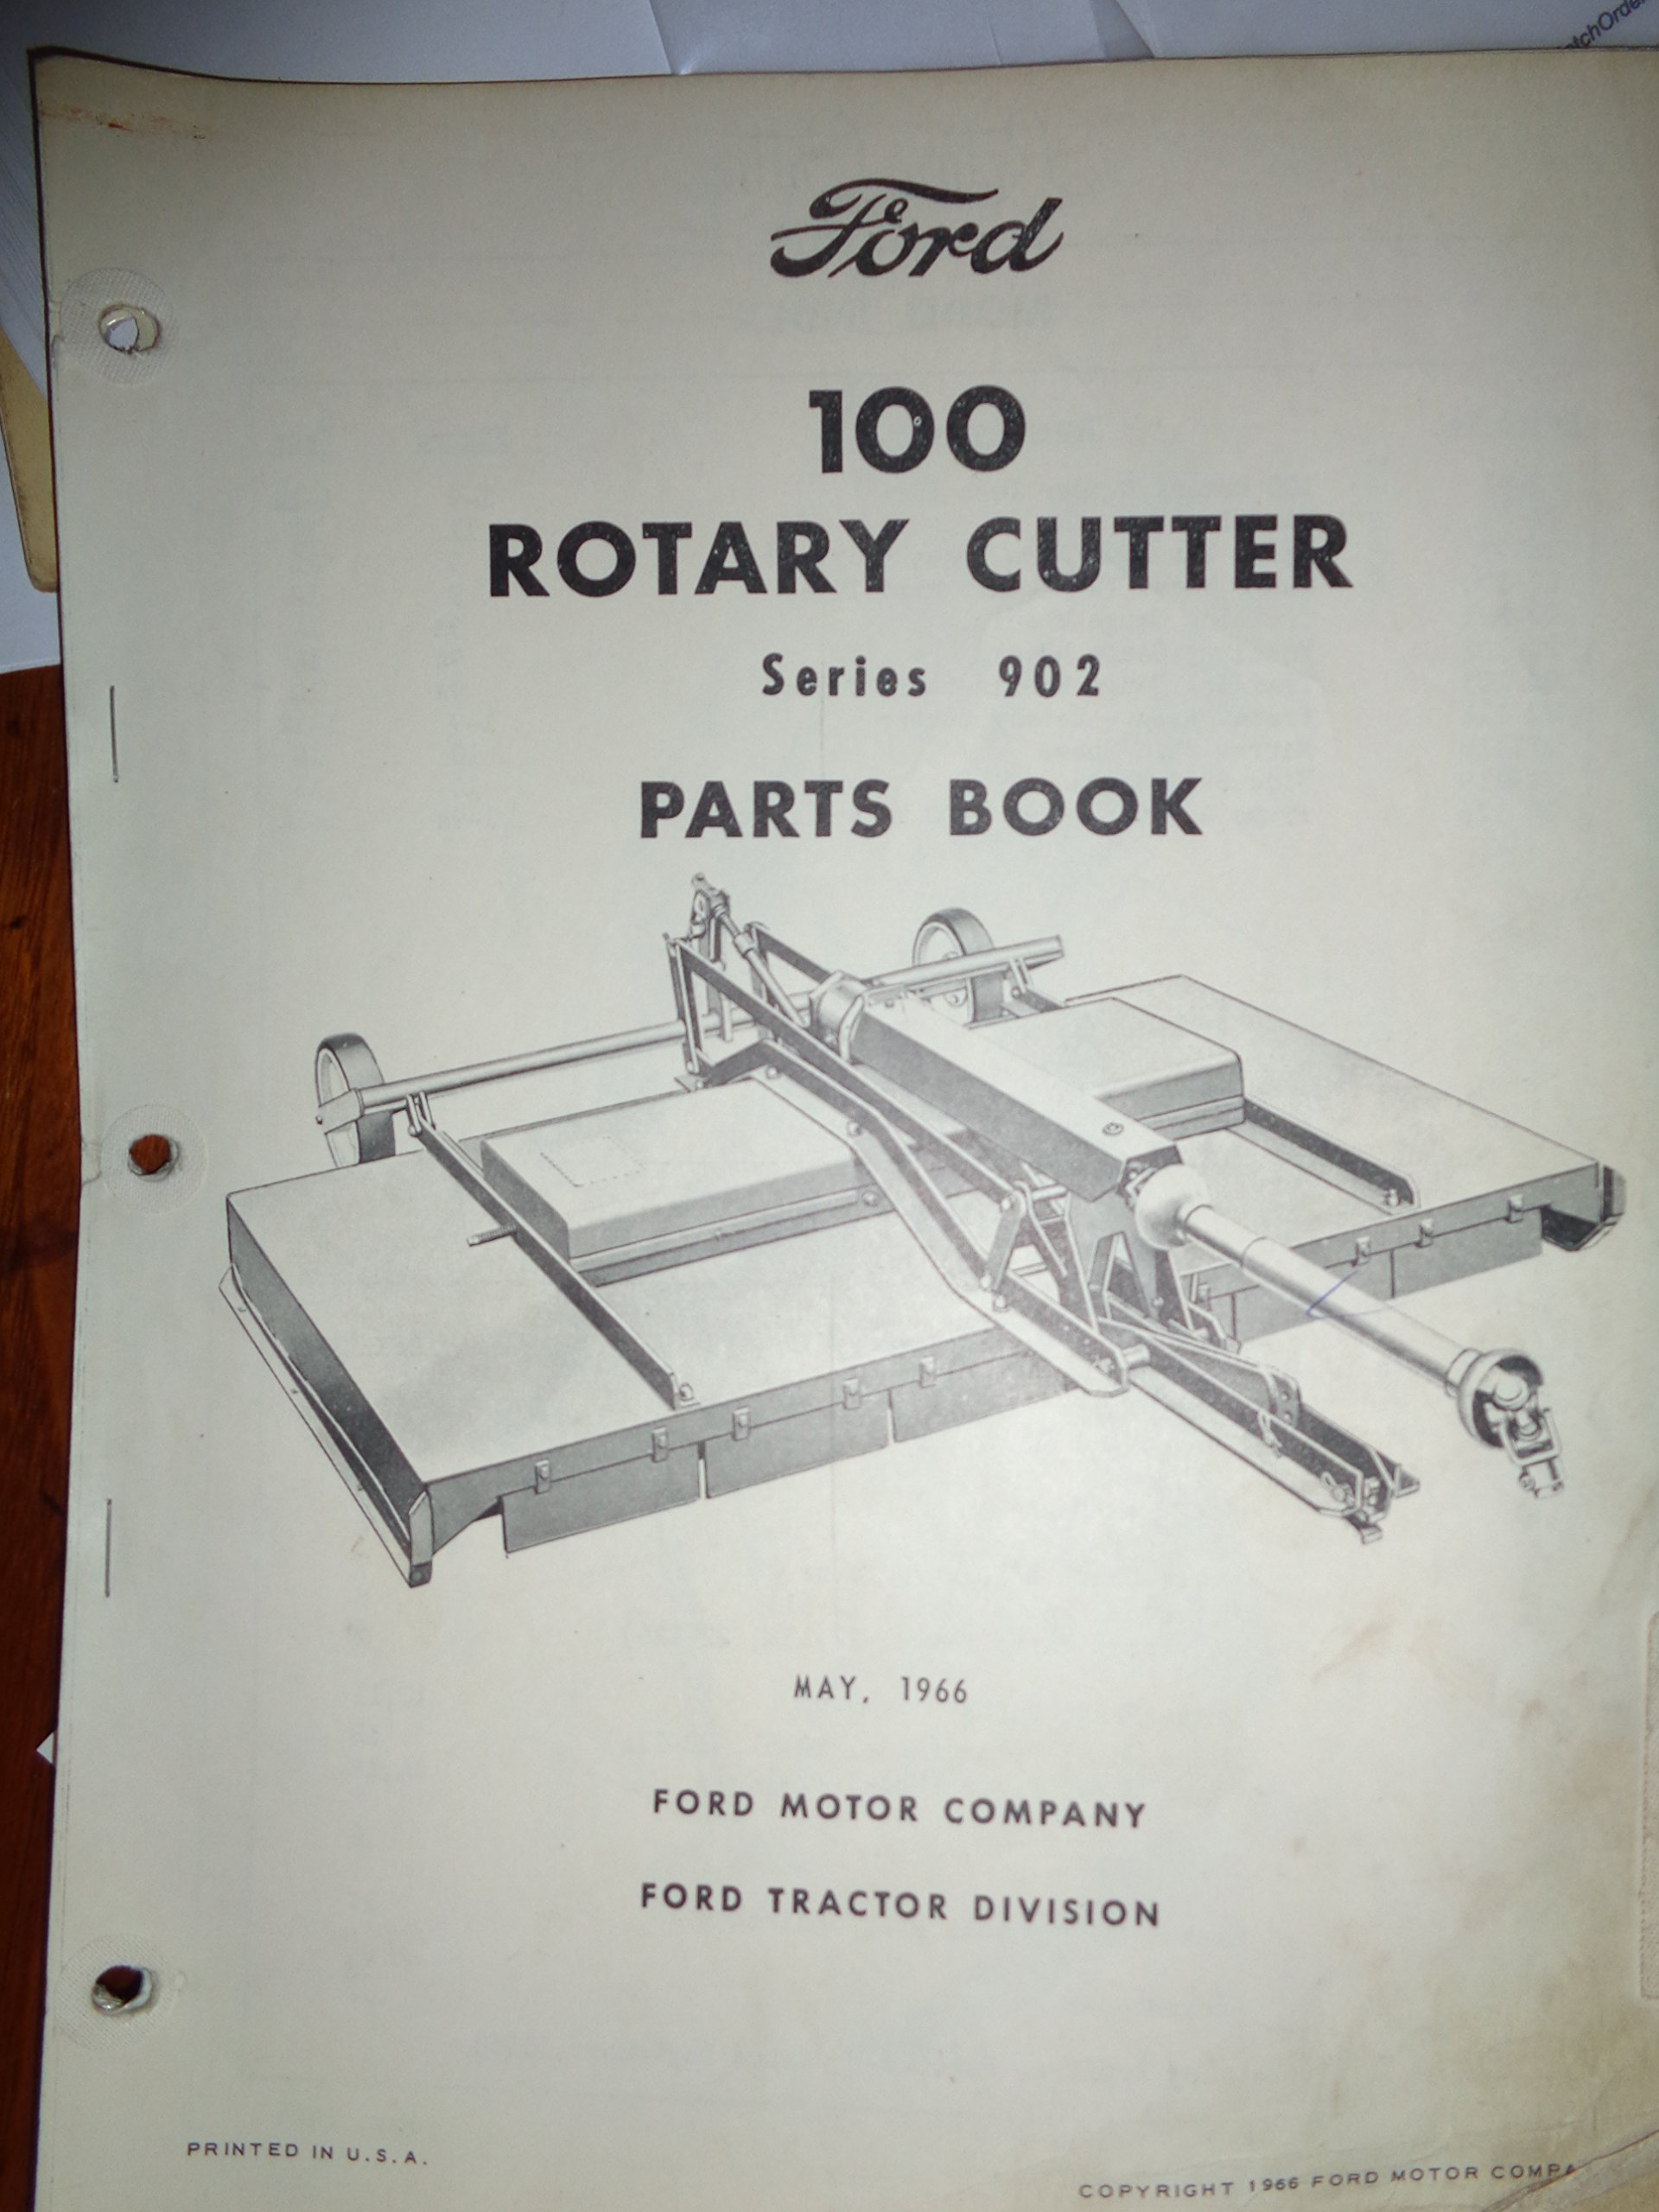 Ford Series 902 100 Rotary Cutter Mower Parts Catalog Book Manual 5 Tractor Schematics 66 Original Books